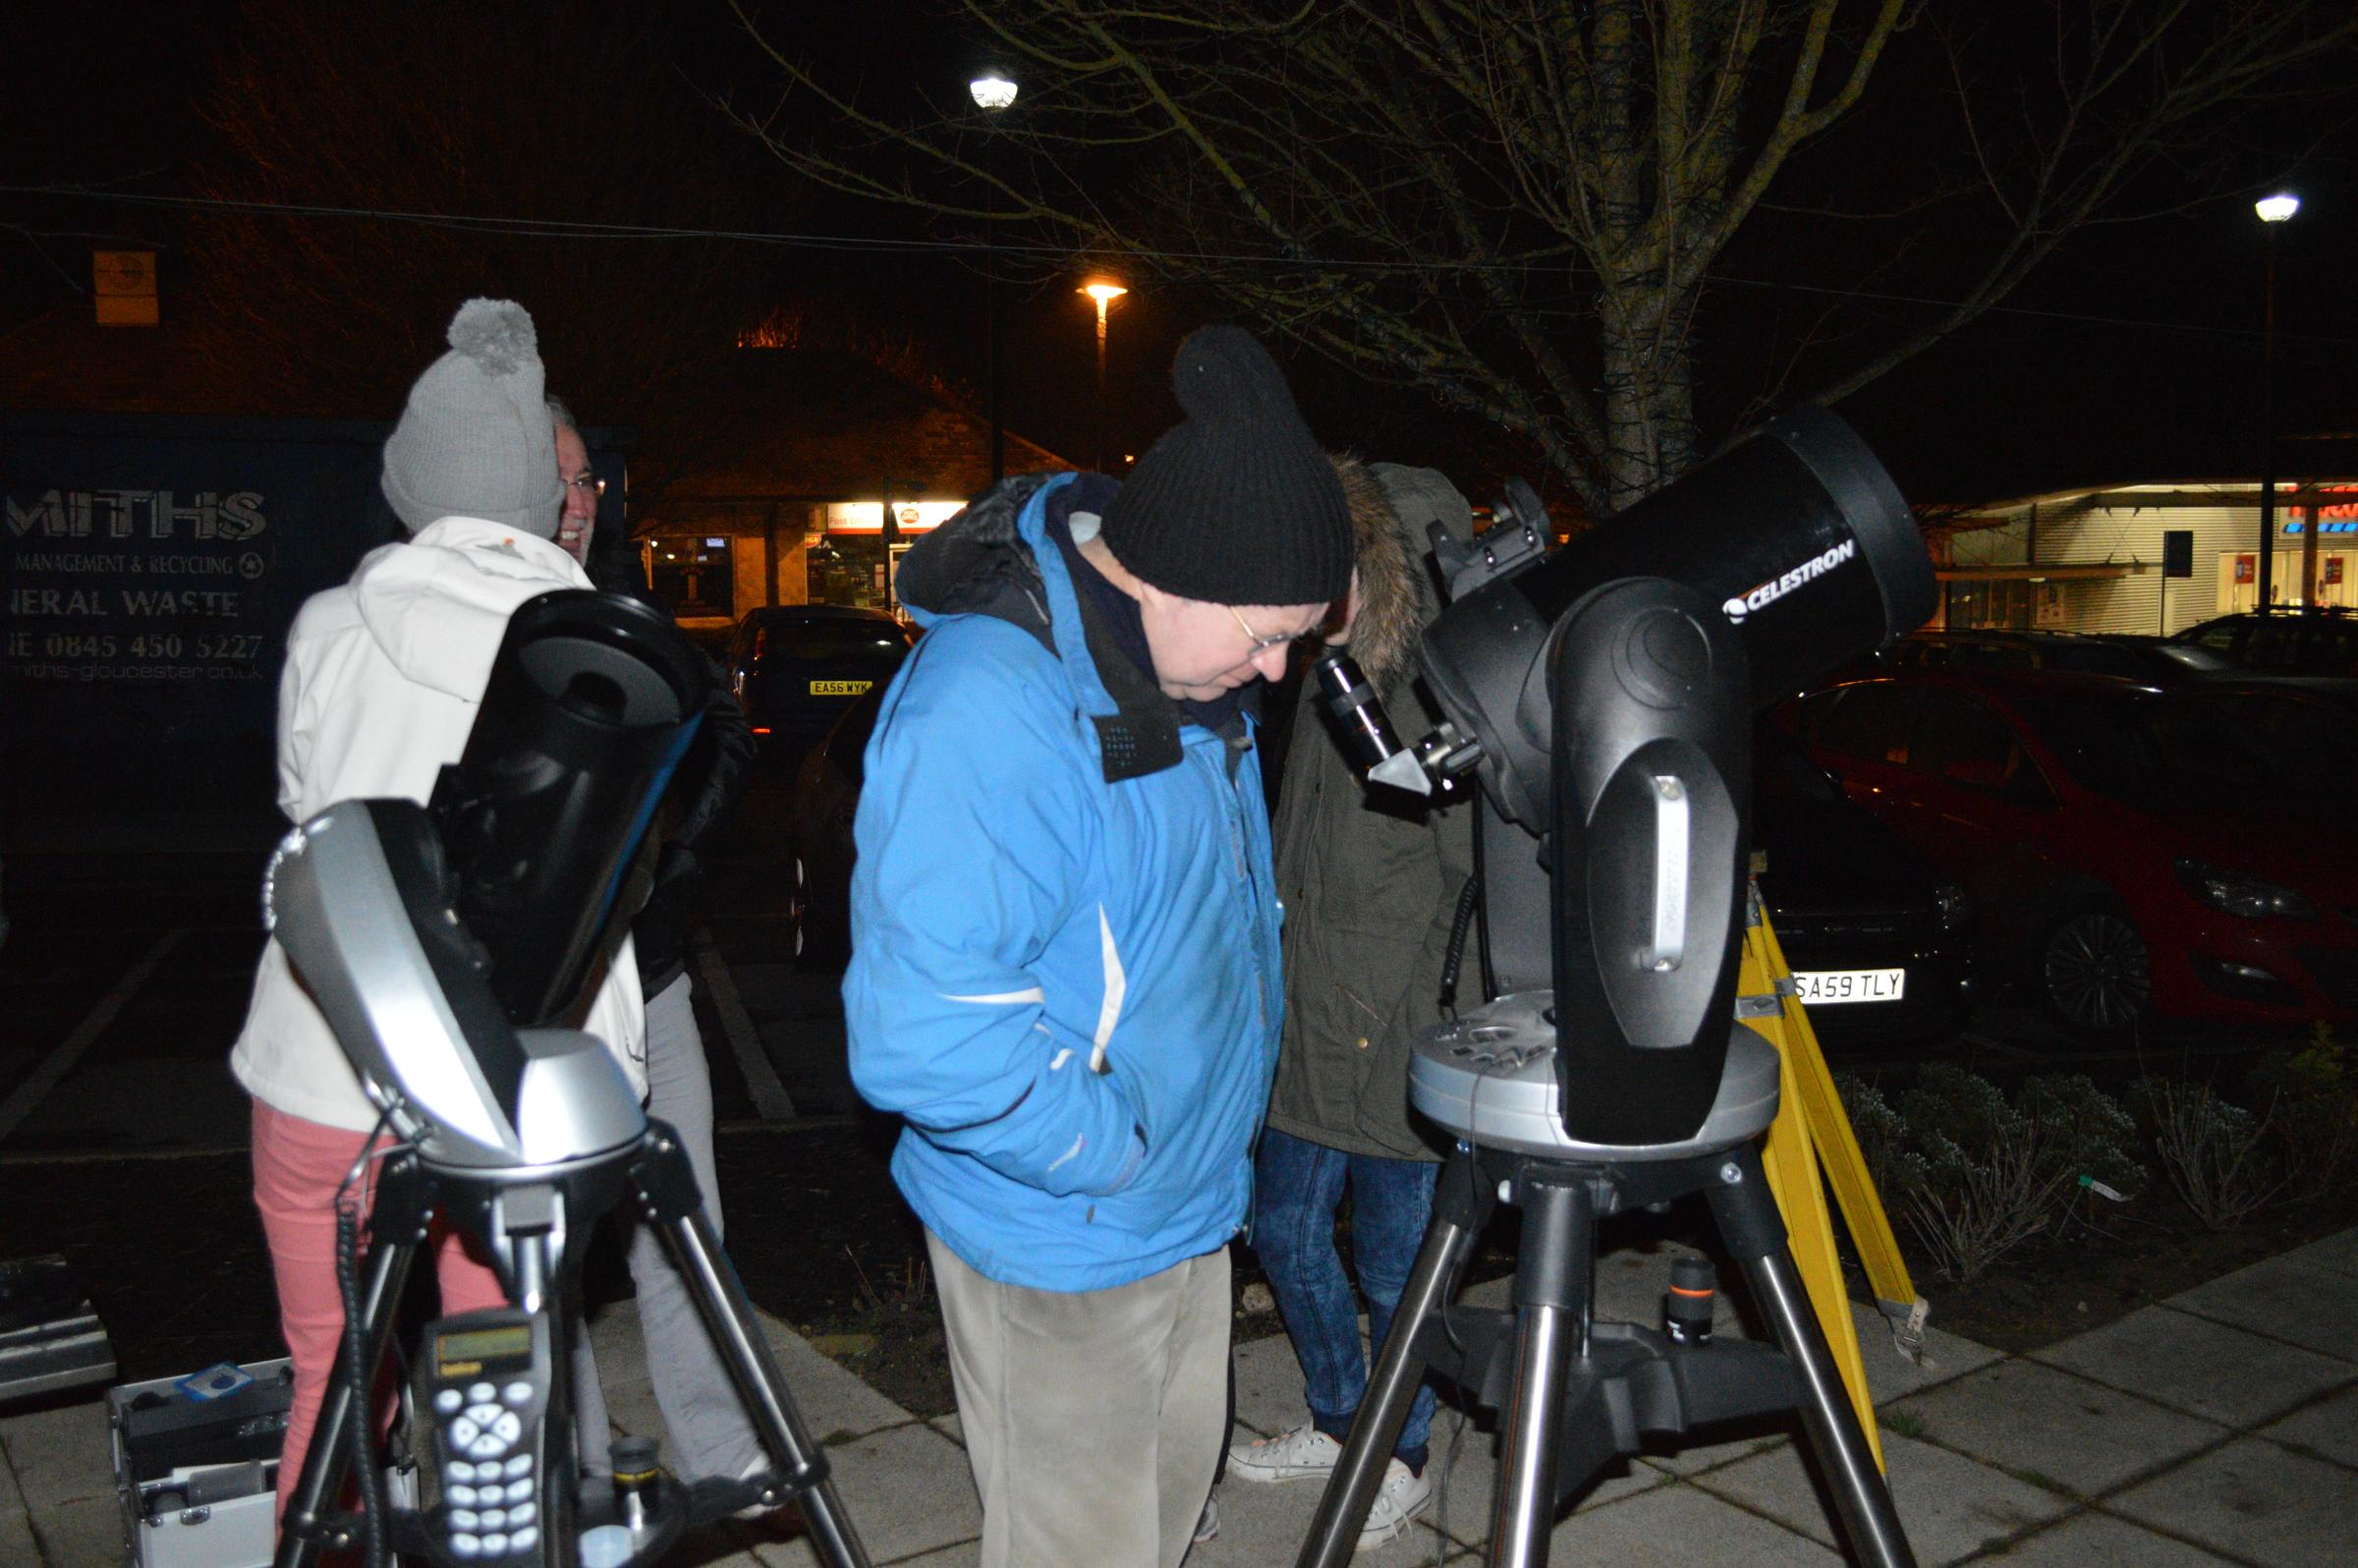 Cam and Dursley Astronomy Club members enjoy fourth annual live stargazing event (3503981)